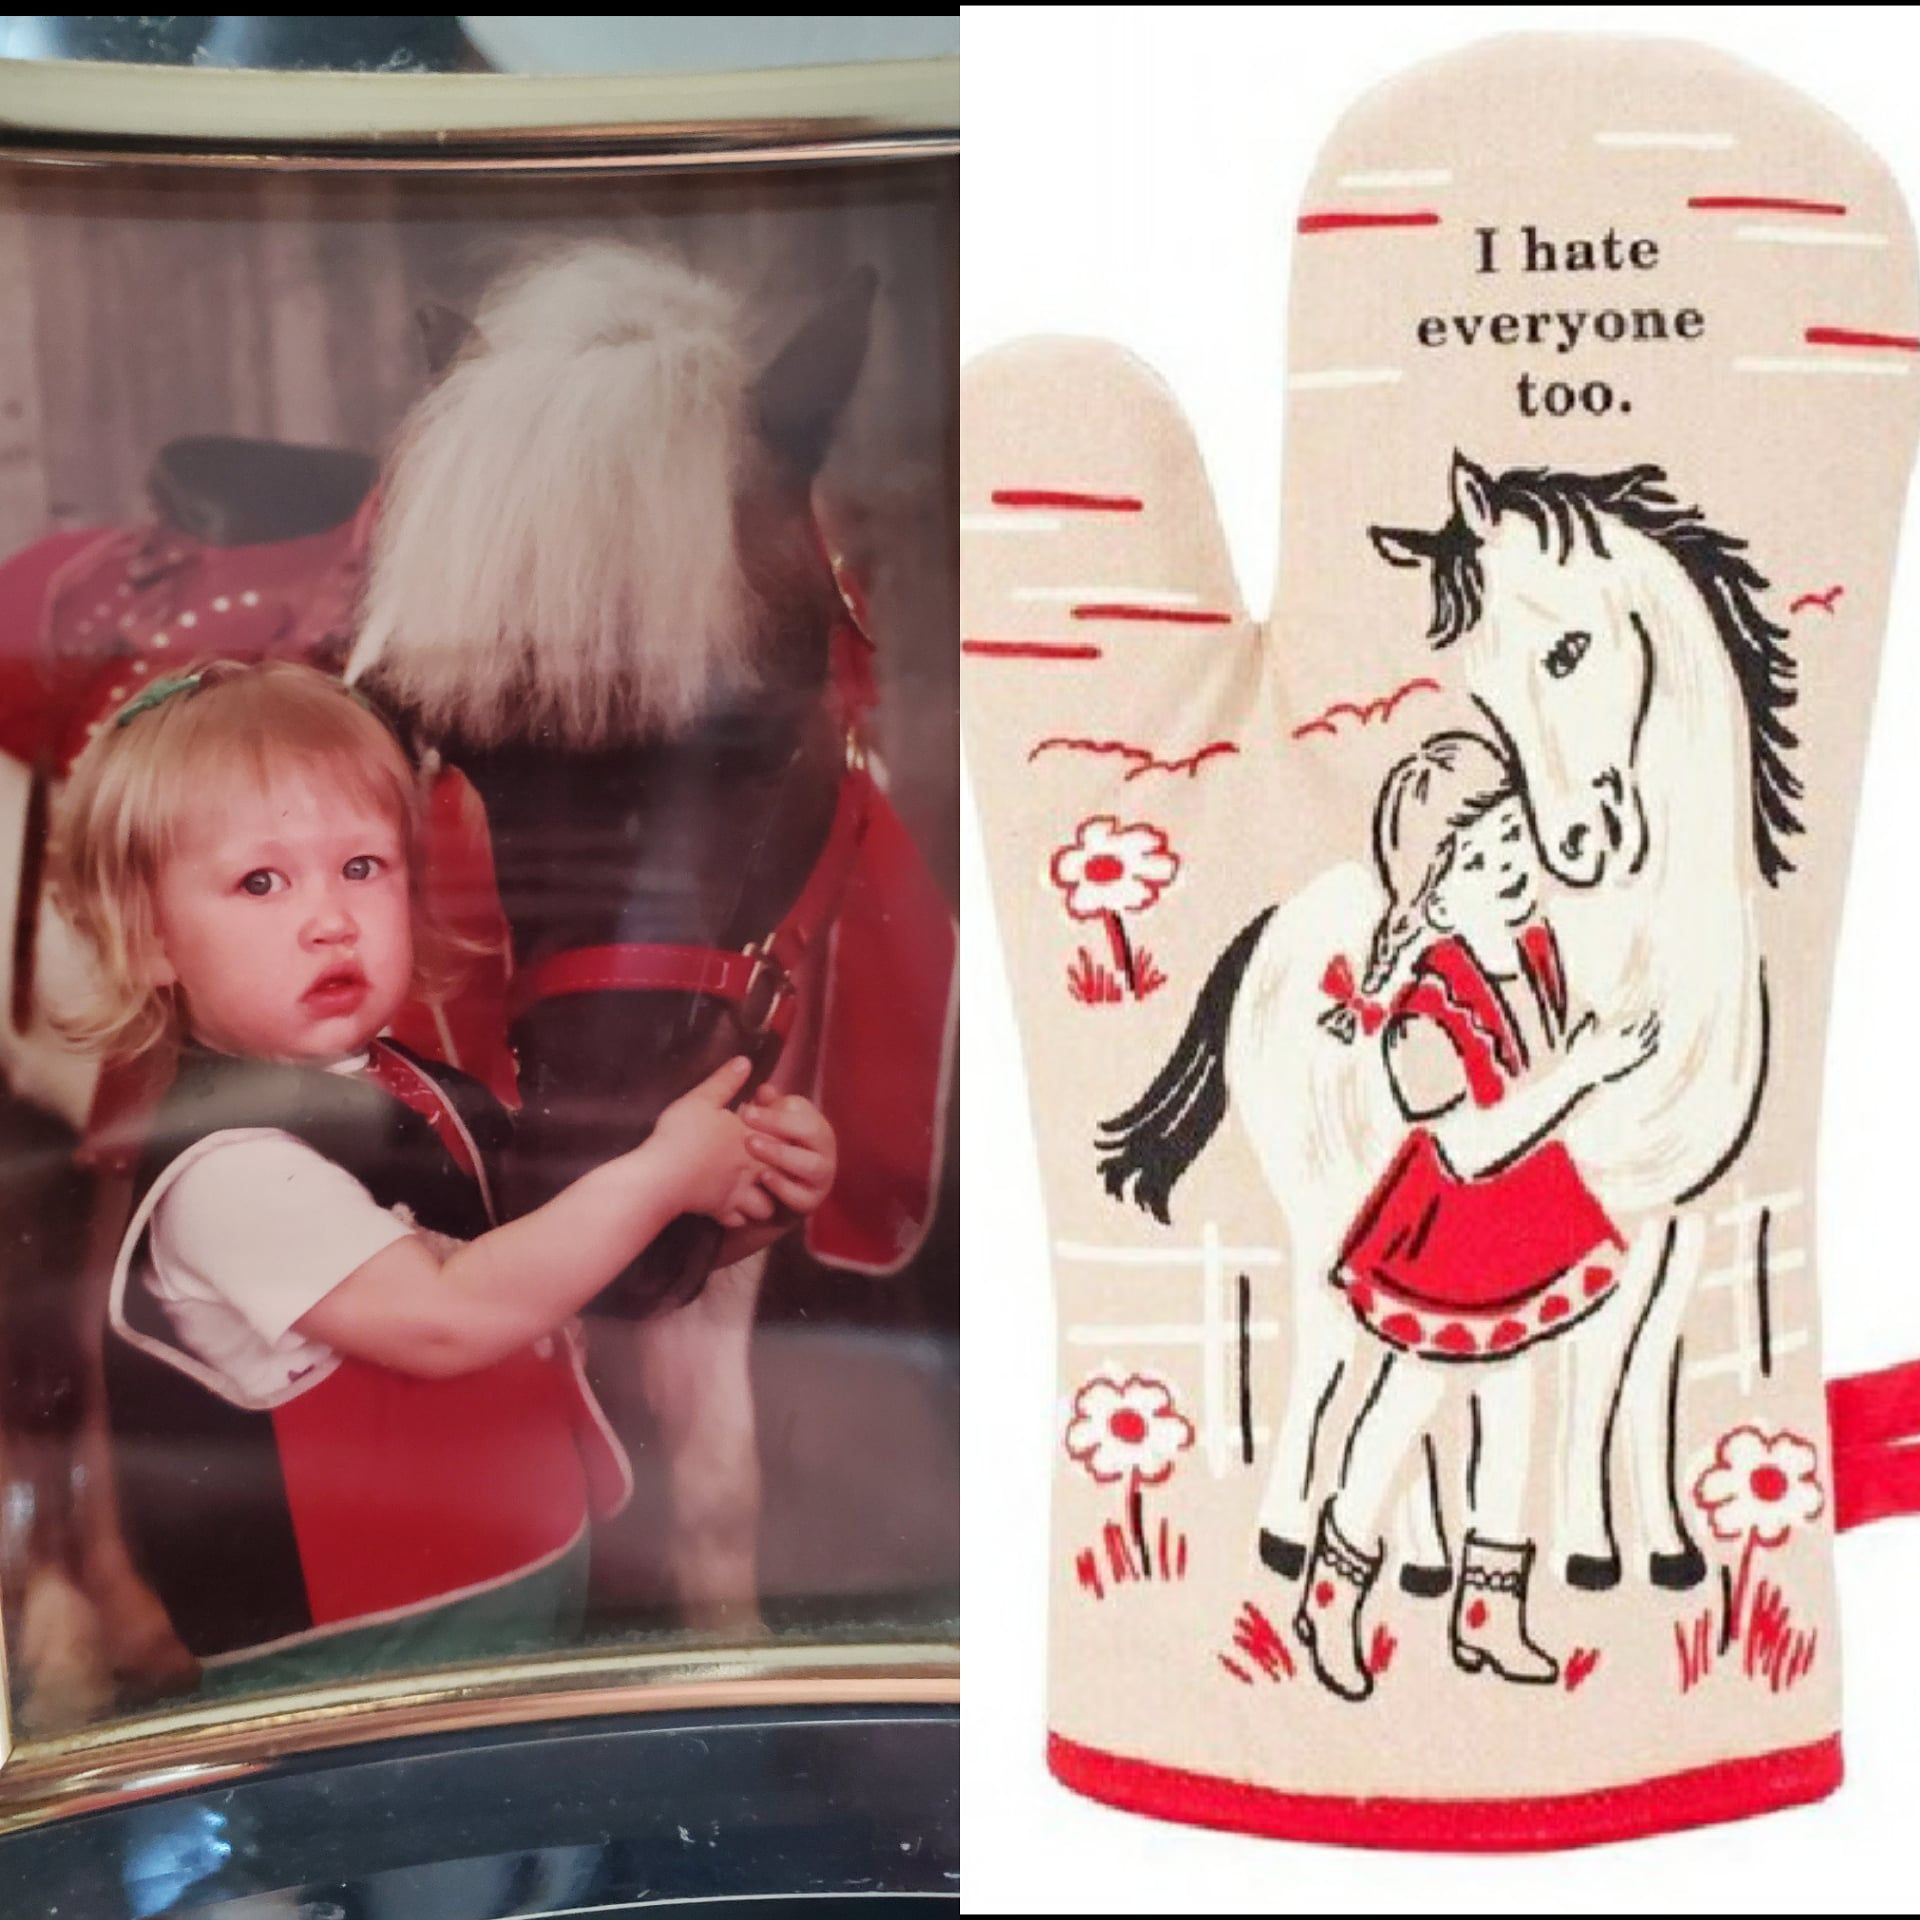 A childhood picture of me vs an oven mitt ad I got on facebook today